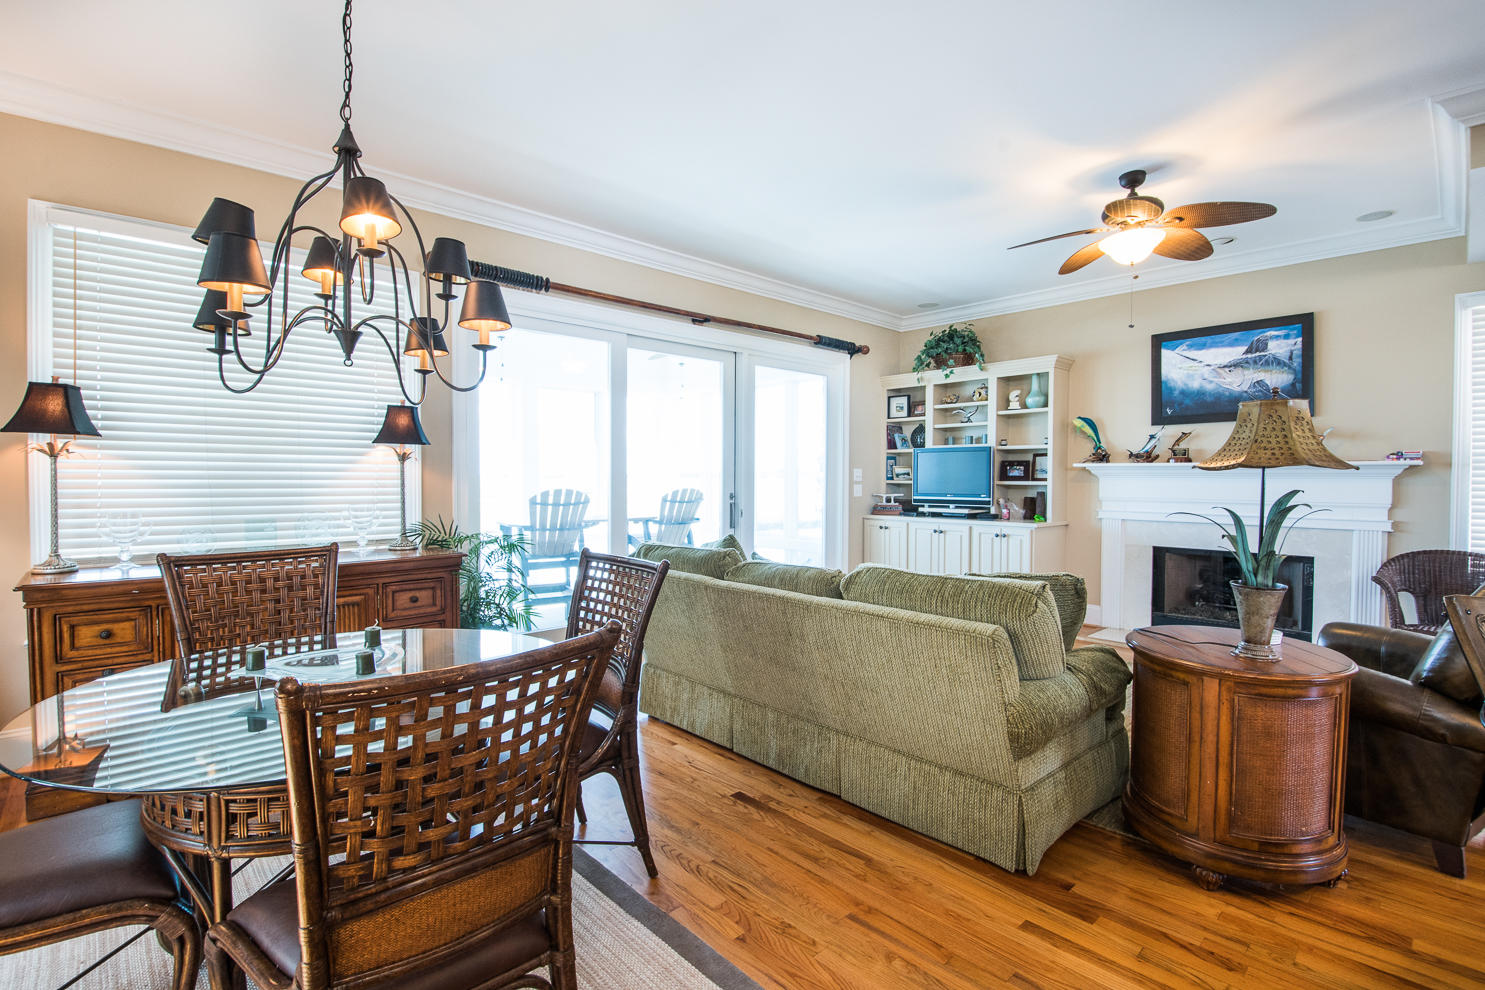 Tolers Cove Homes For Sale - B-4 & B-5 Tolers Cove Marina 70ft + Home, Mount Pleasant, SC - 31